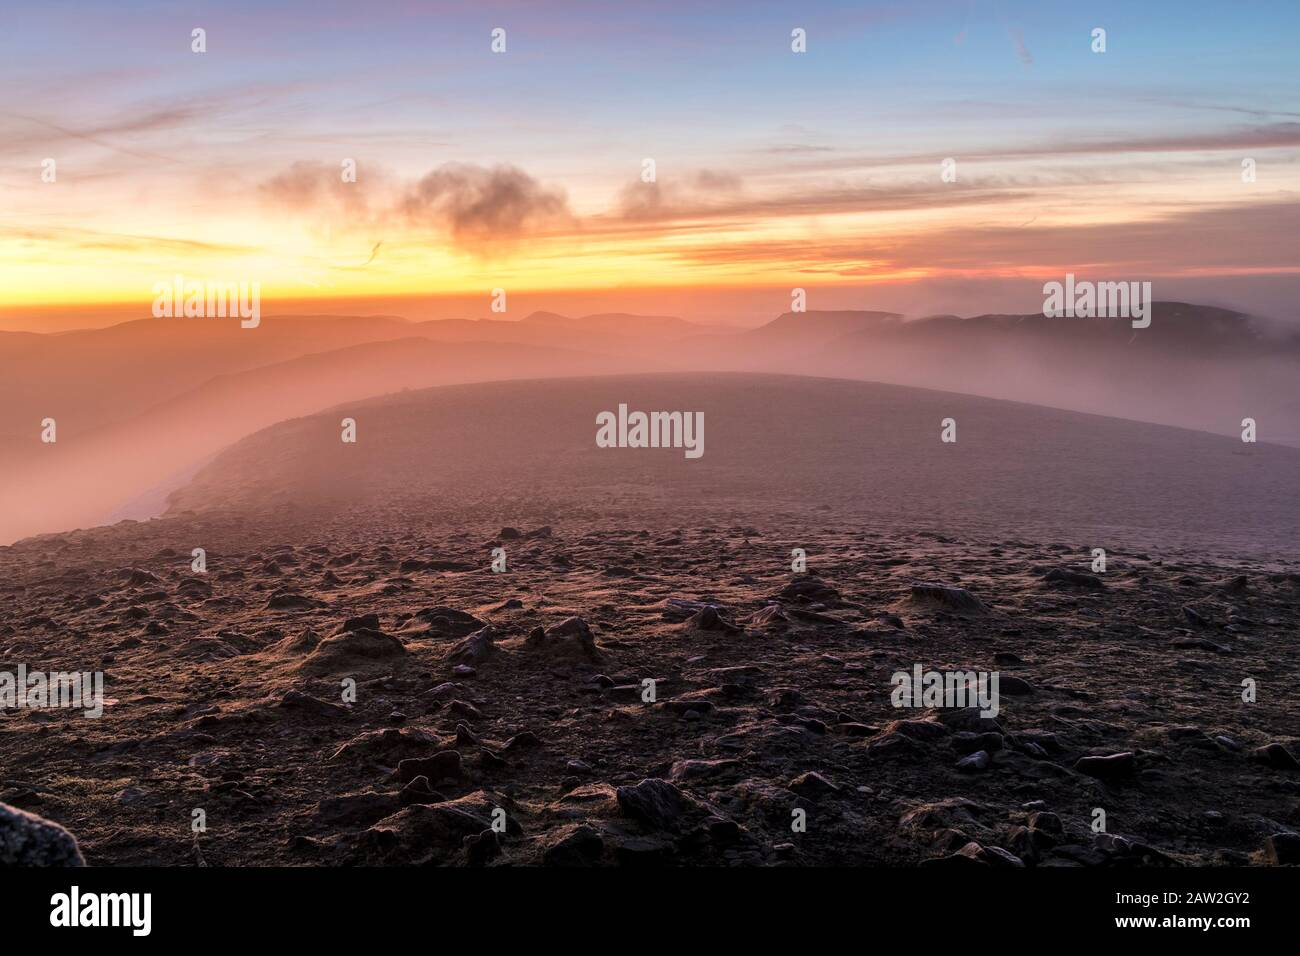 The View South at Dawn from the Summit Shelter on Helvellyn as Mist Barriendo La meseta, Lake District, Cumbria, Reino Unido Foto de stock